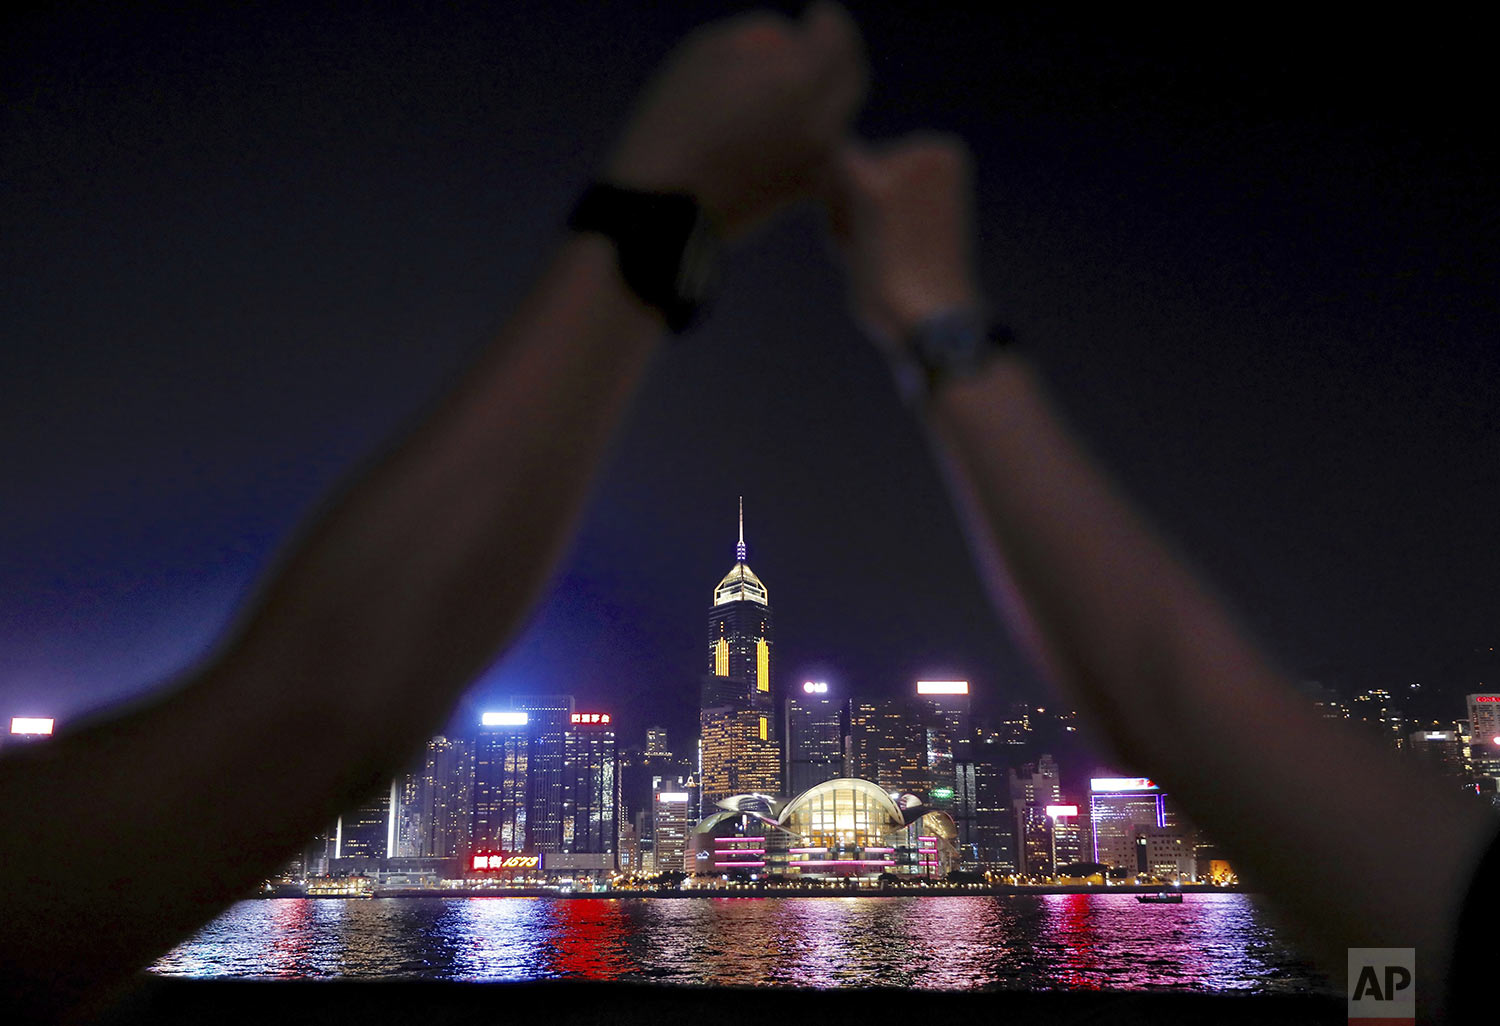 Demonstrators link hands as they gather at the Tsim Sha Tsui waterfront in Hong Kong, Friday, Aug. 23, 2019. (AP Photo/Vincent Yu)